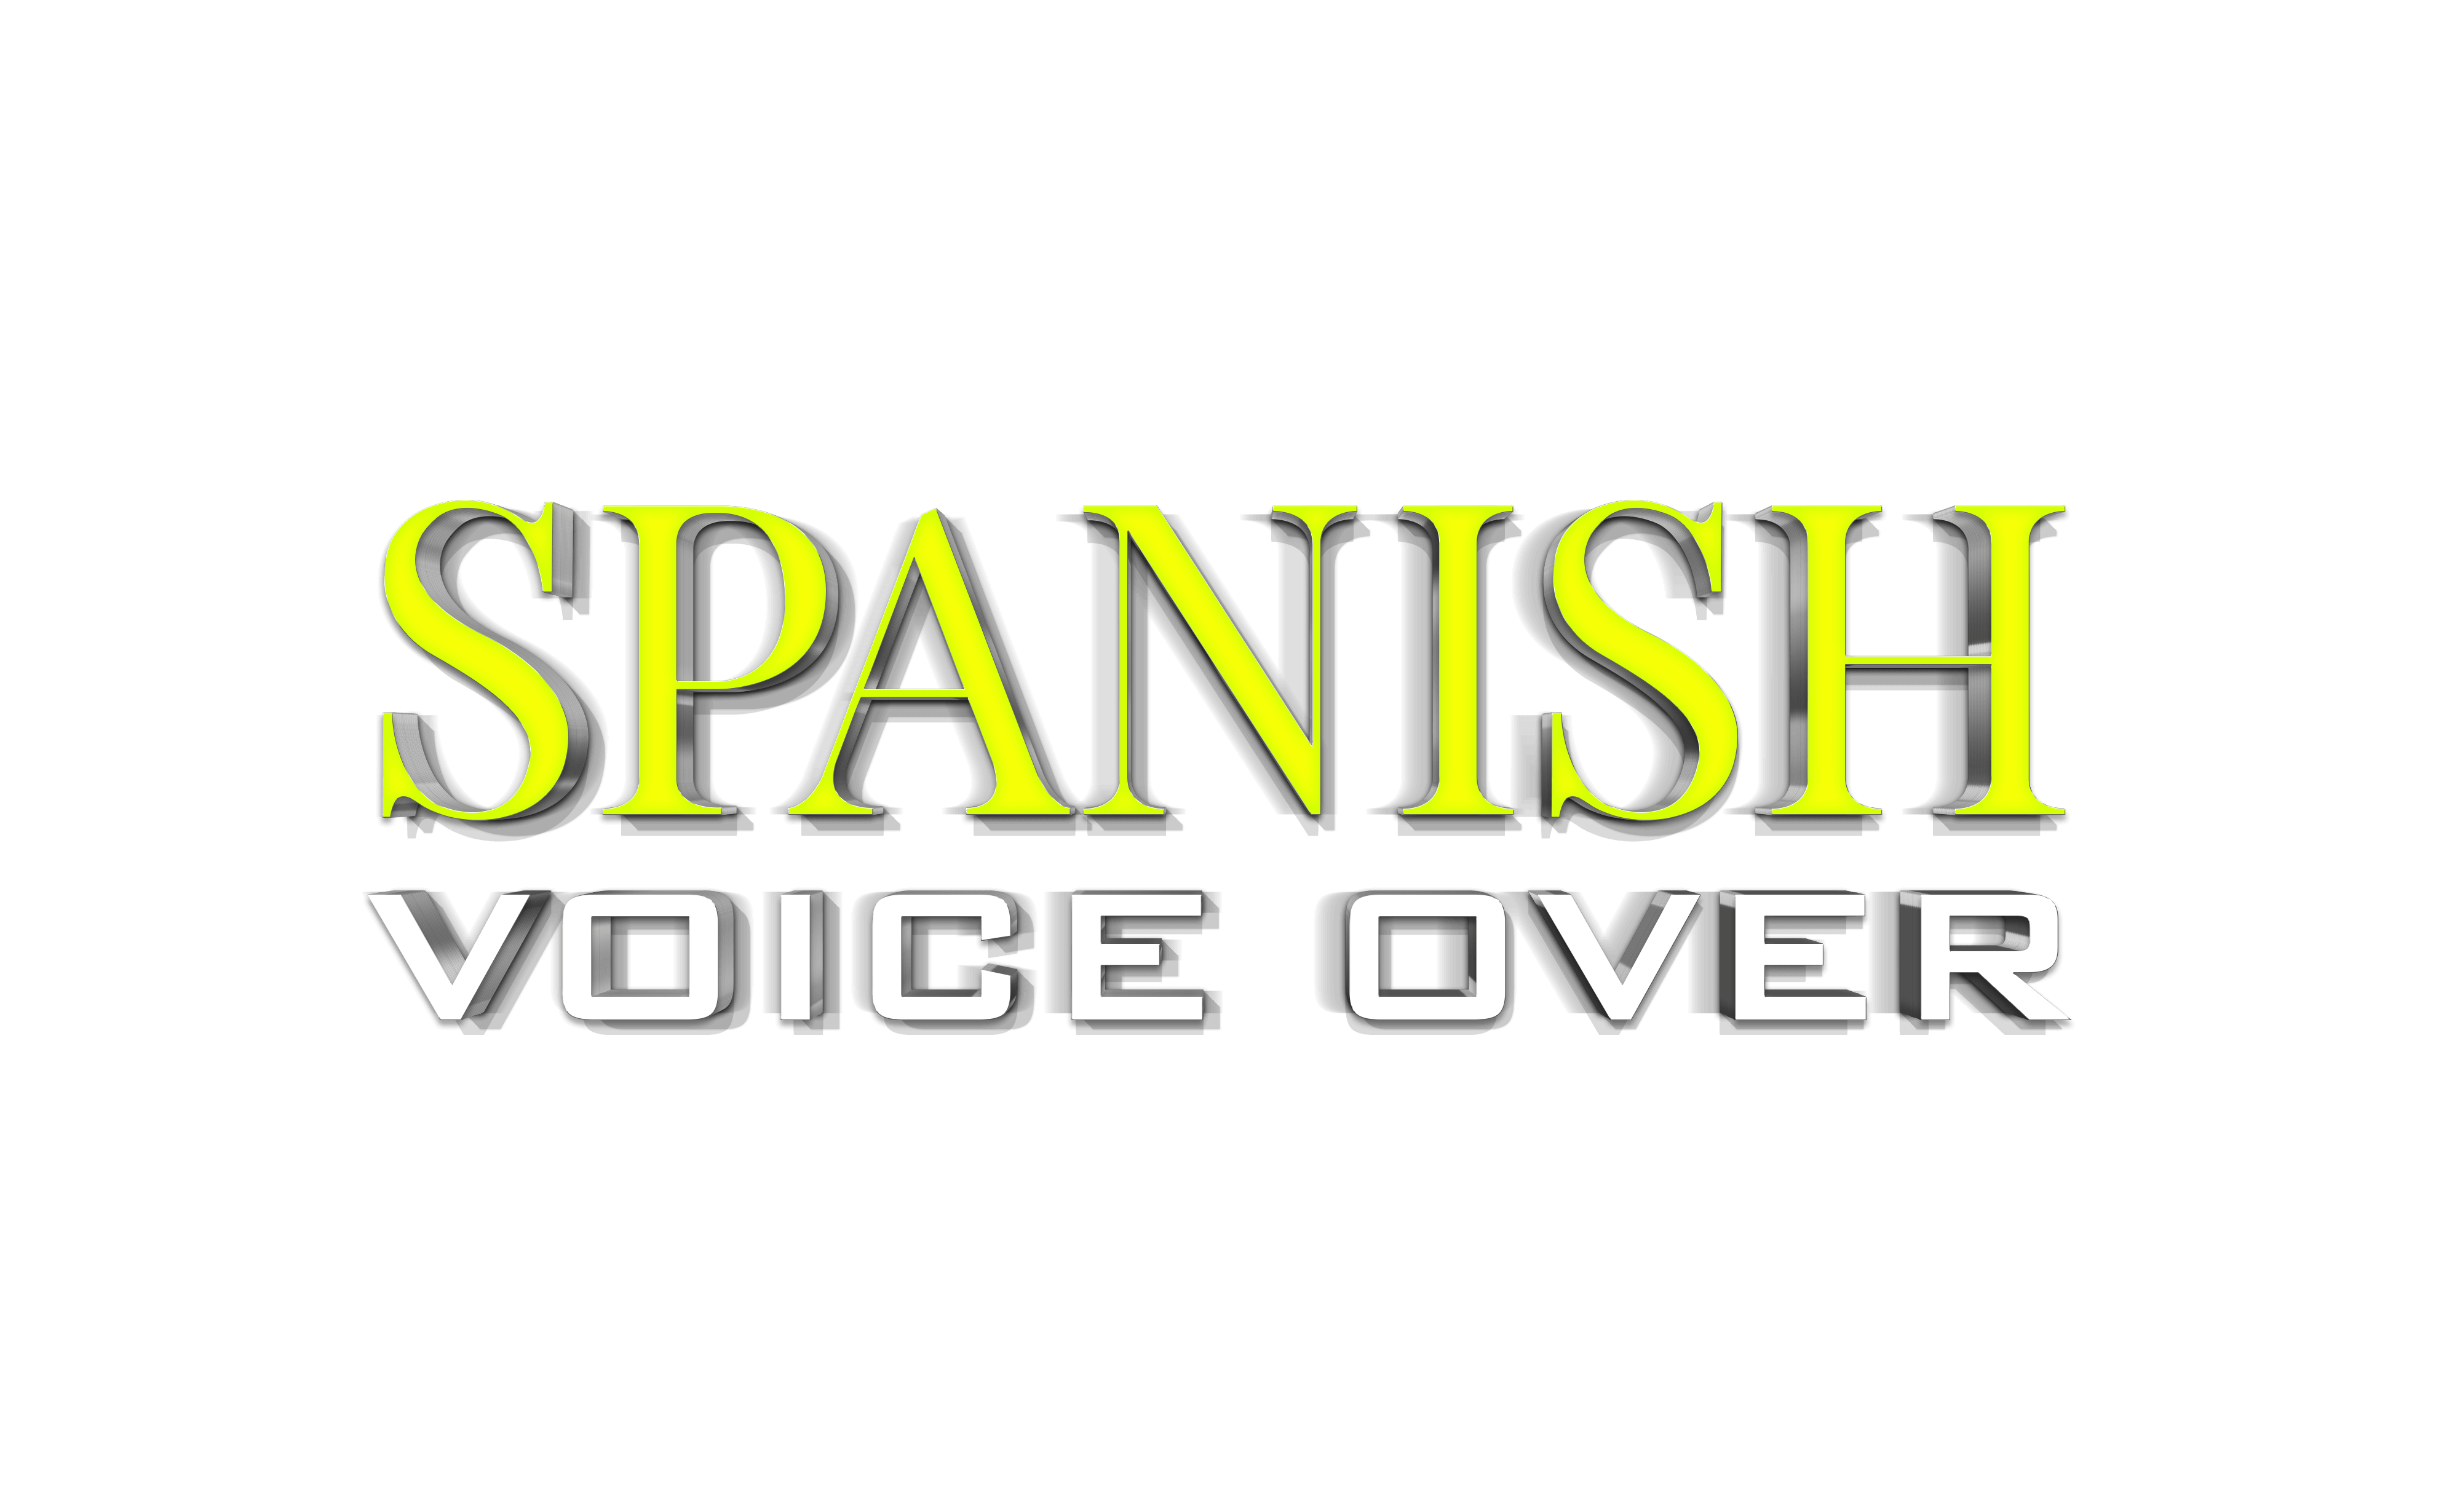 Spanish Voice Over